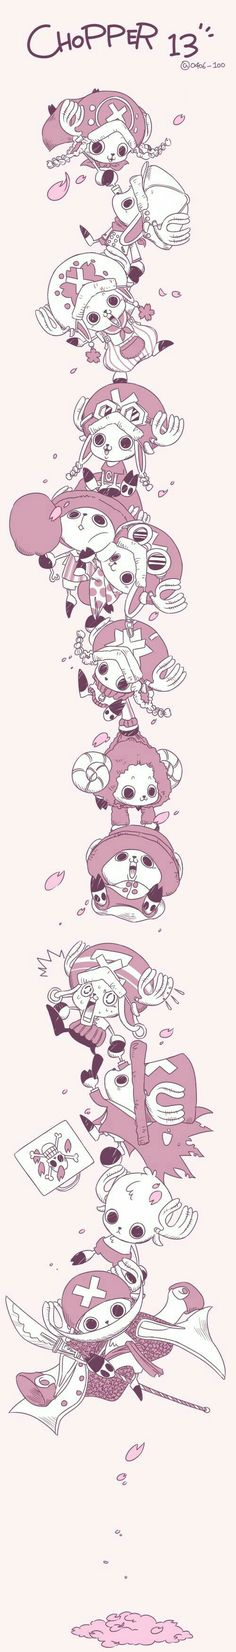 Tony Tony Chopper, cute, pile, young, childhood, different ages, time lapse, outfits; One Piece